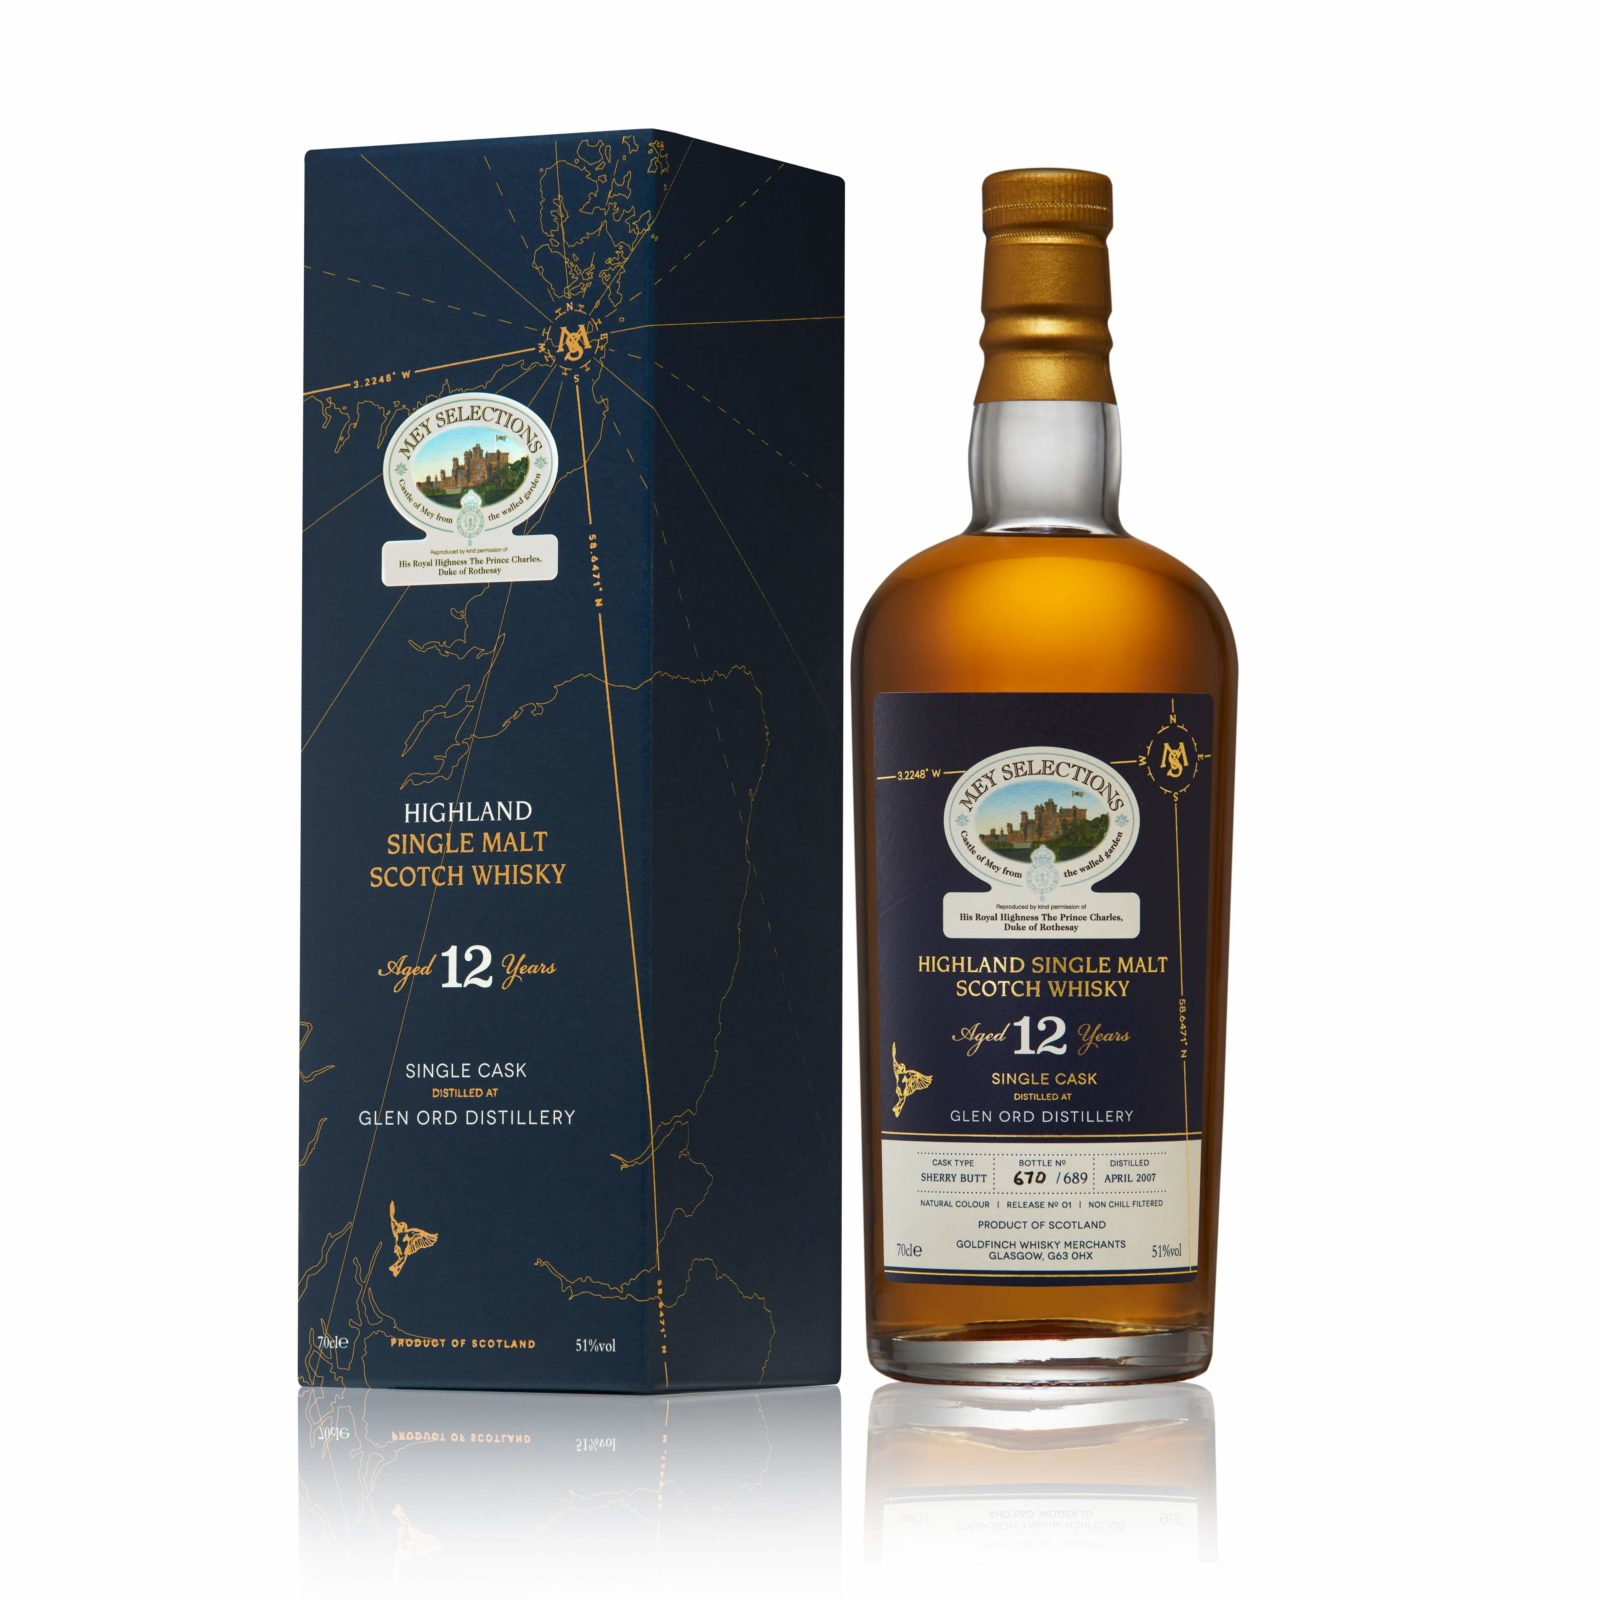 Limited Edition Whisky And Gin With Royal Connection Launched photo